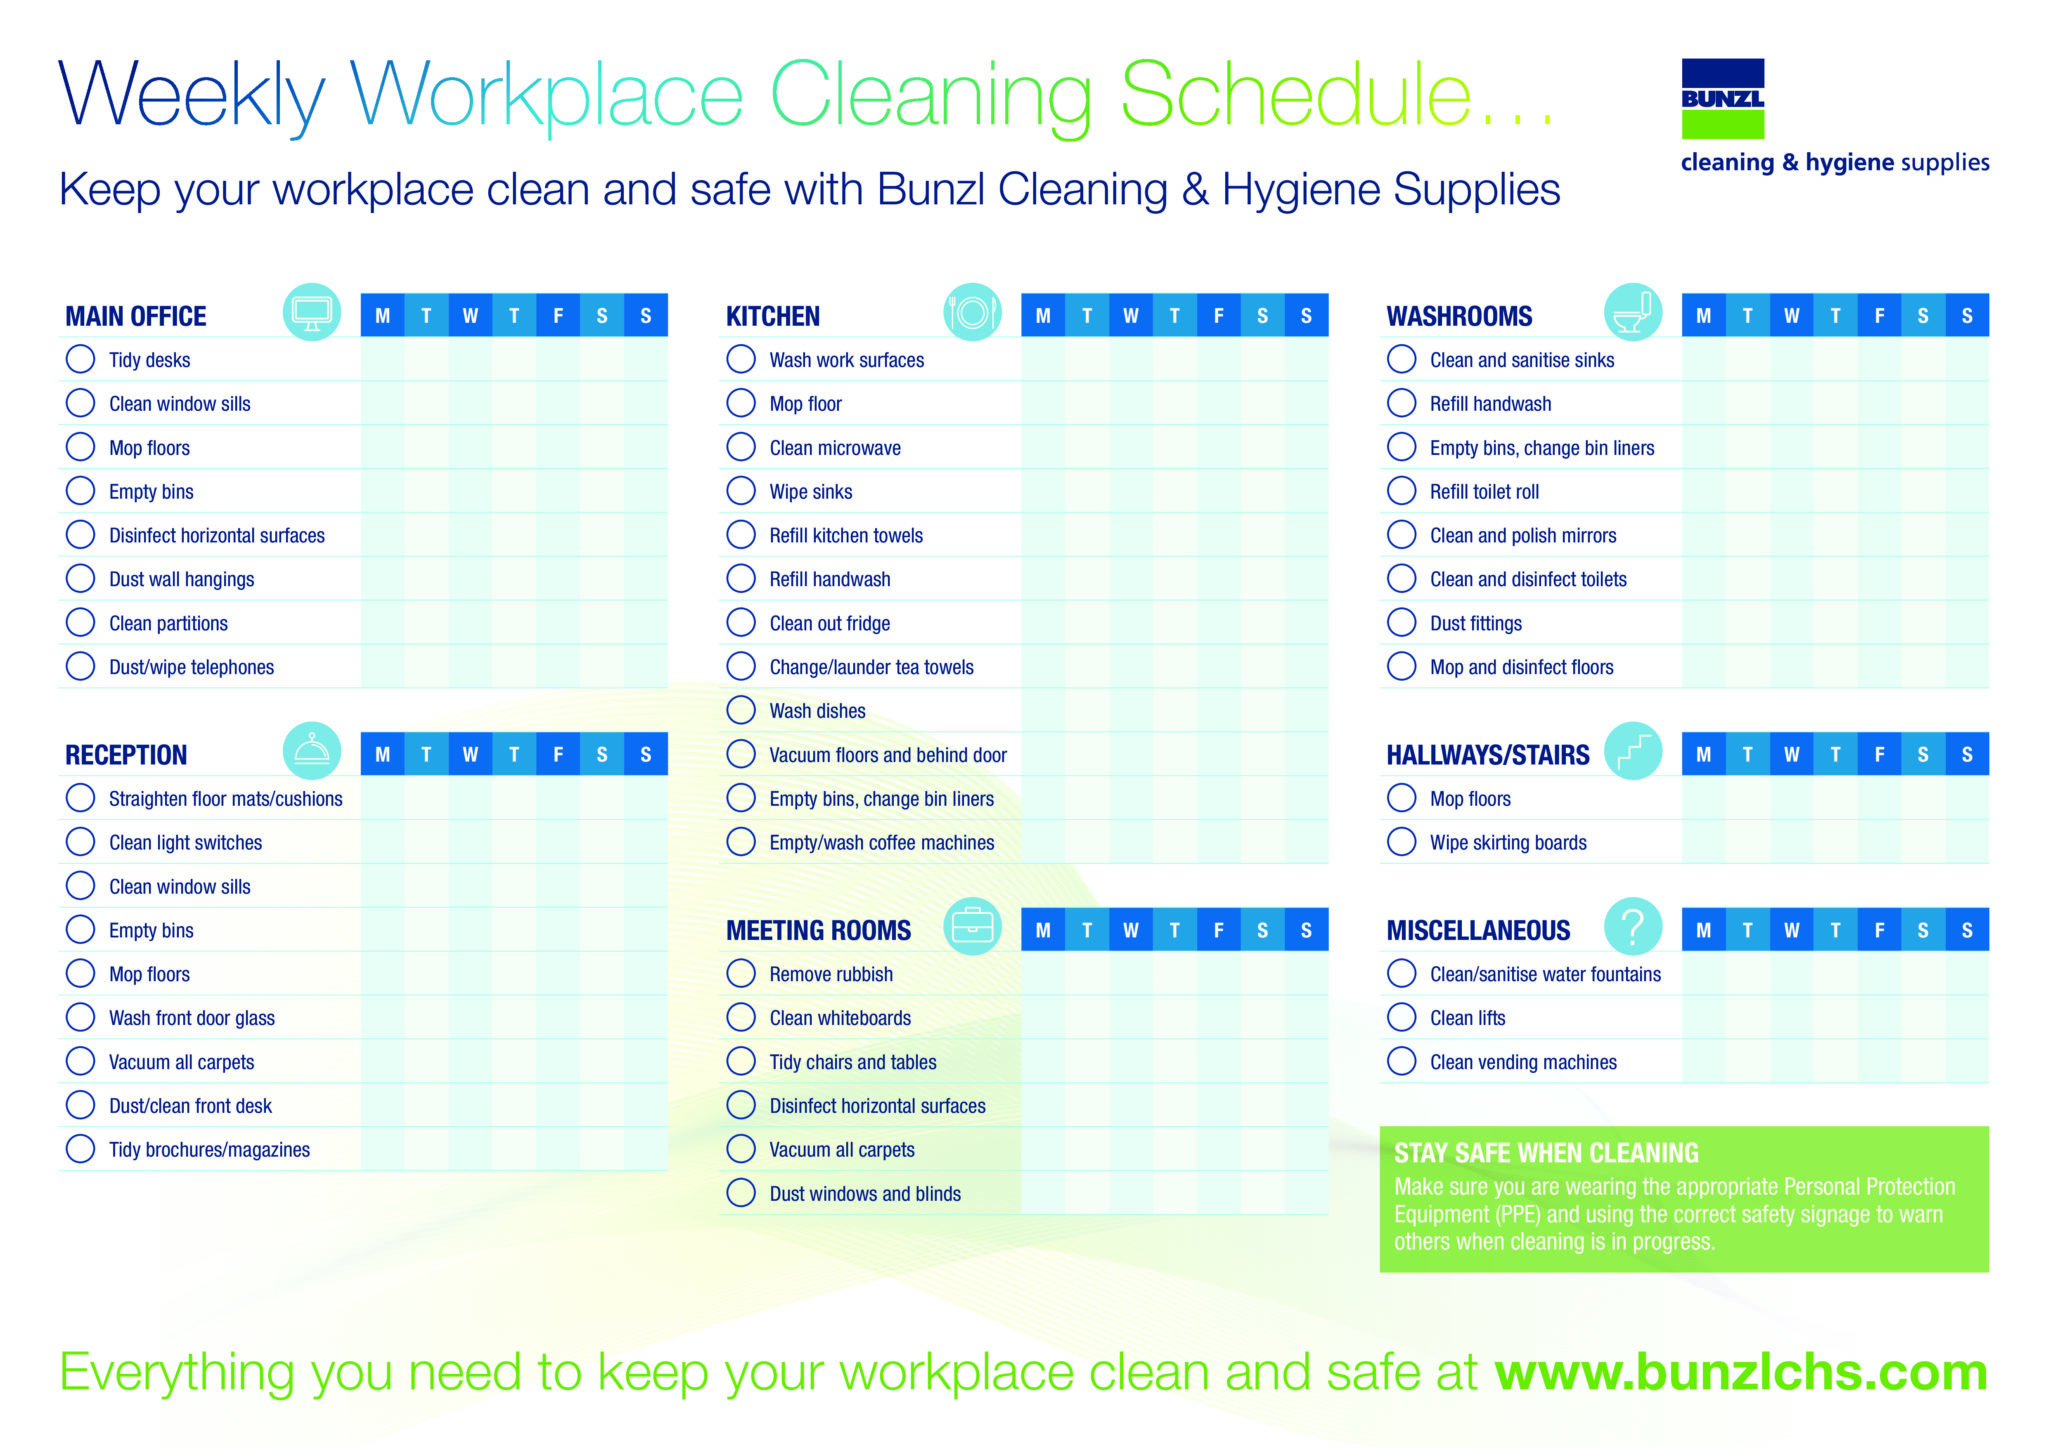 DOWNLOAD: Cleaning schedule for your workplace - BUNZL ...